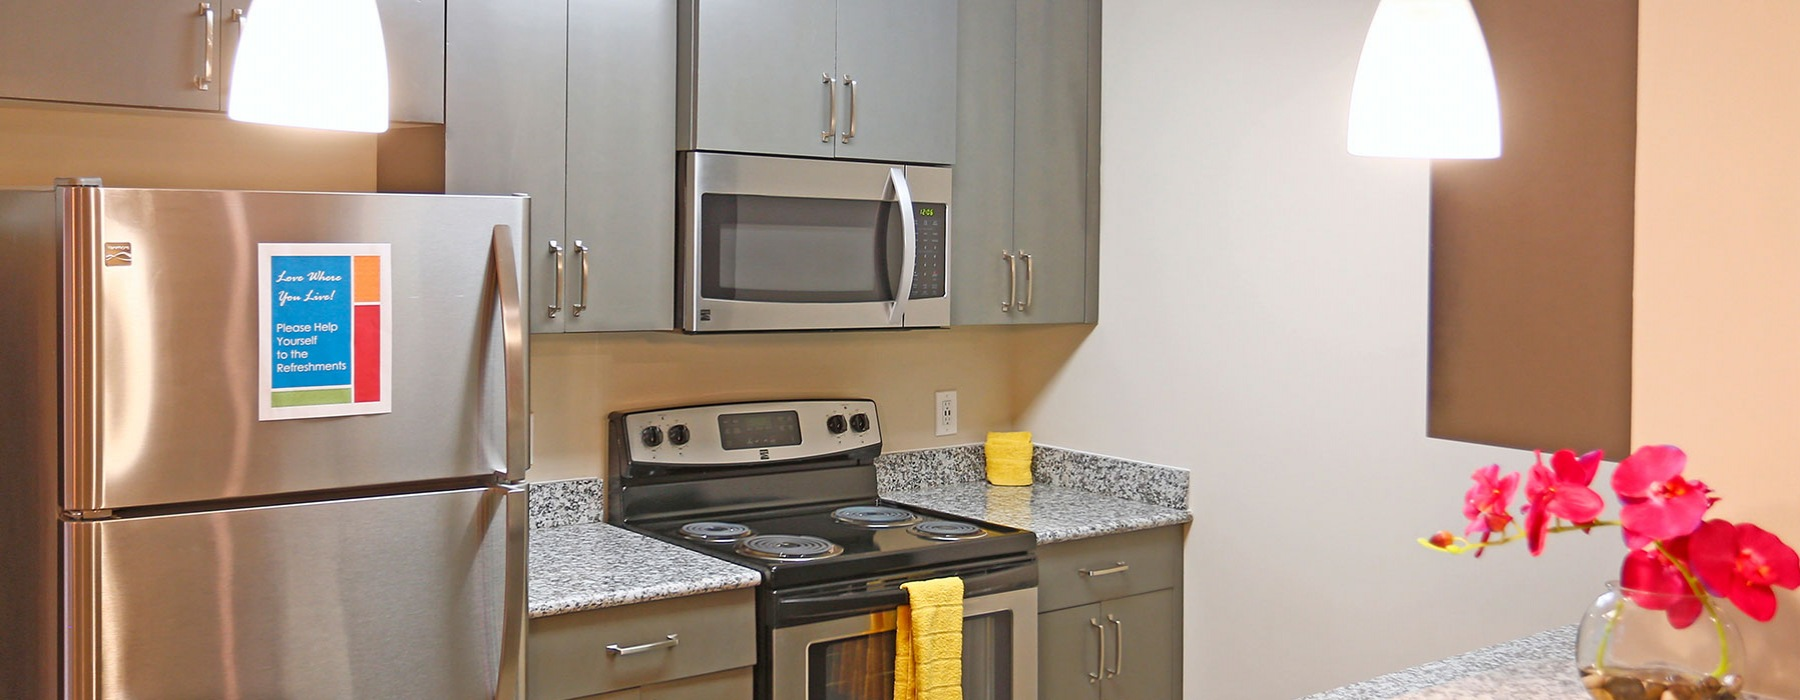 Modern Kitchen With Stainless Steel Appliances & Grey Cabinets At Laurel View Apartments in Concord, NC